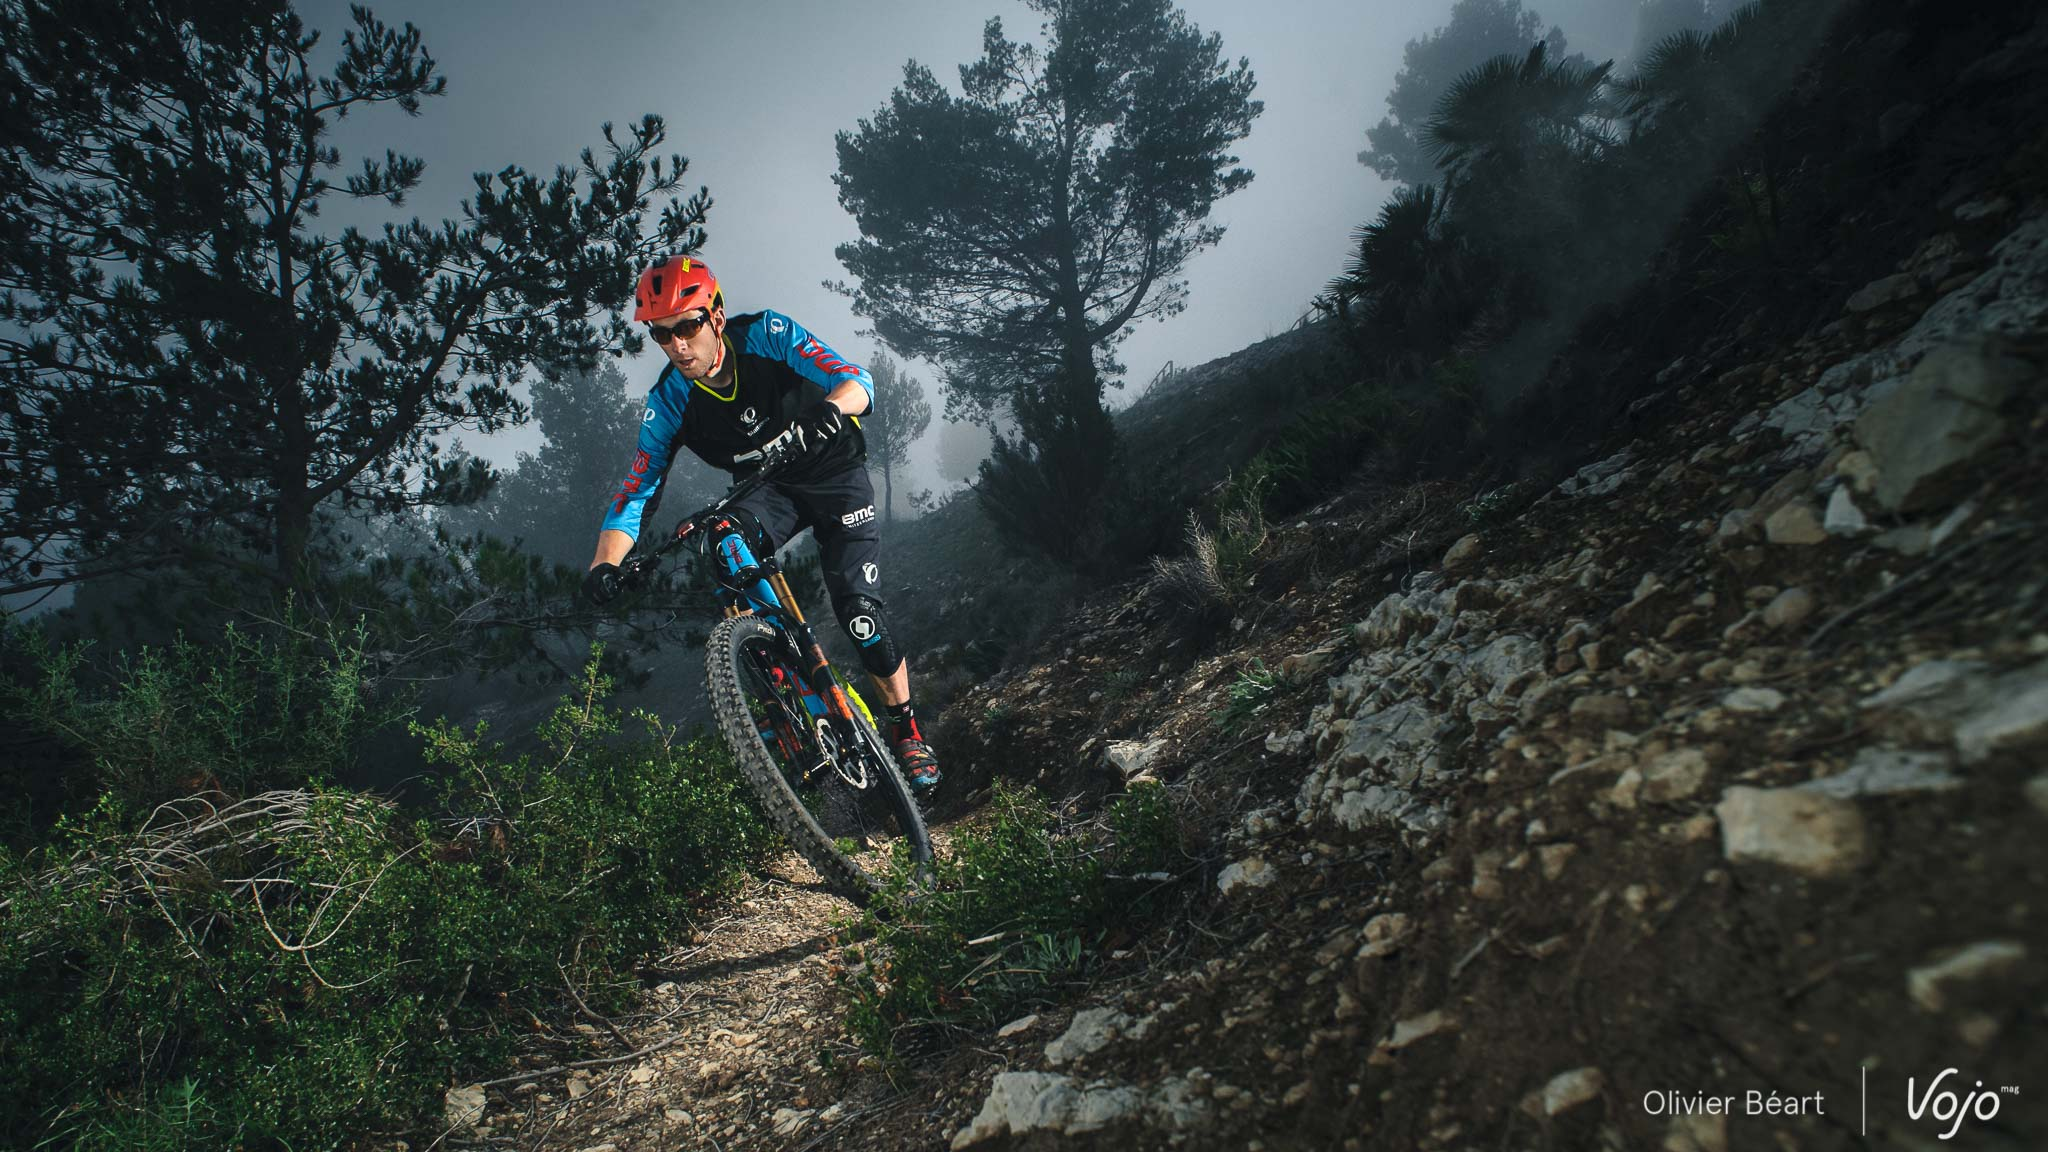 Francois_Bailly_Maitre_Interview_BMC_TrailCrew_Copyright_OBeart_VojoMag-9